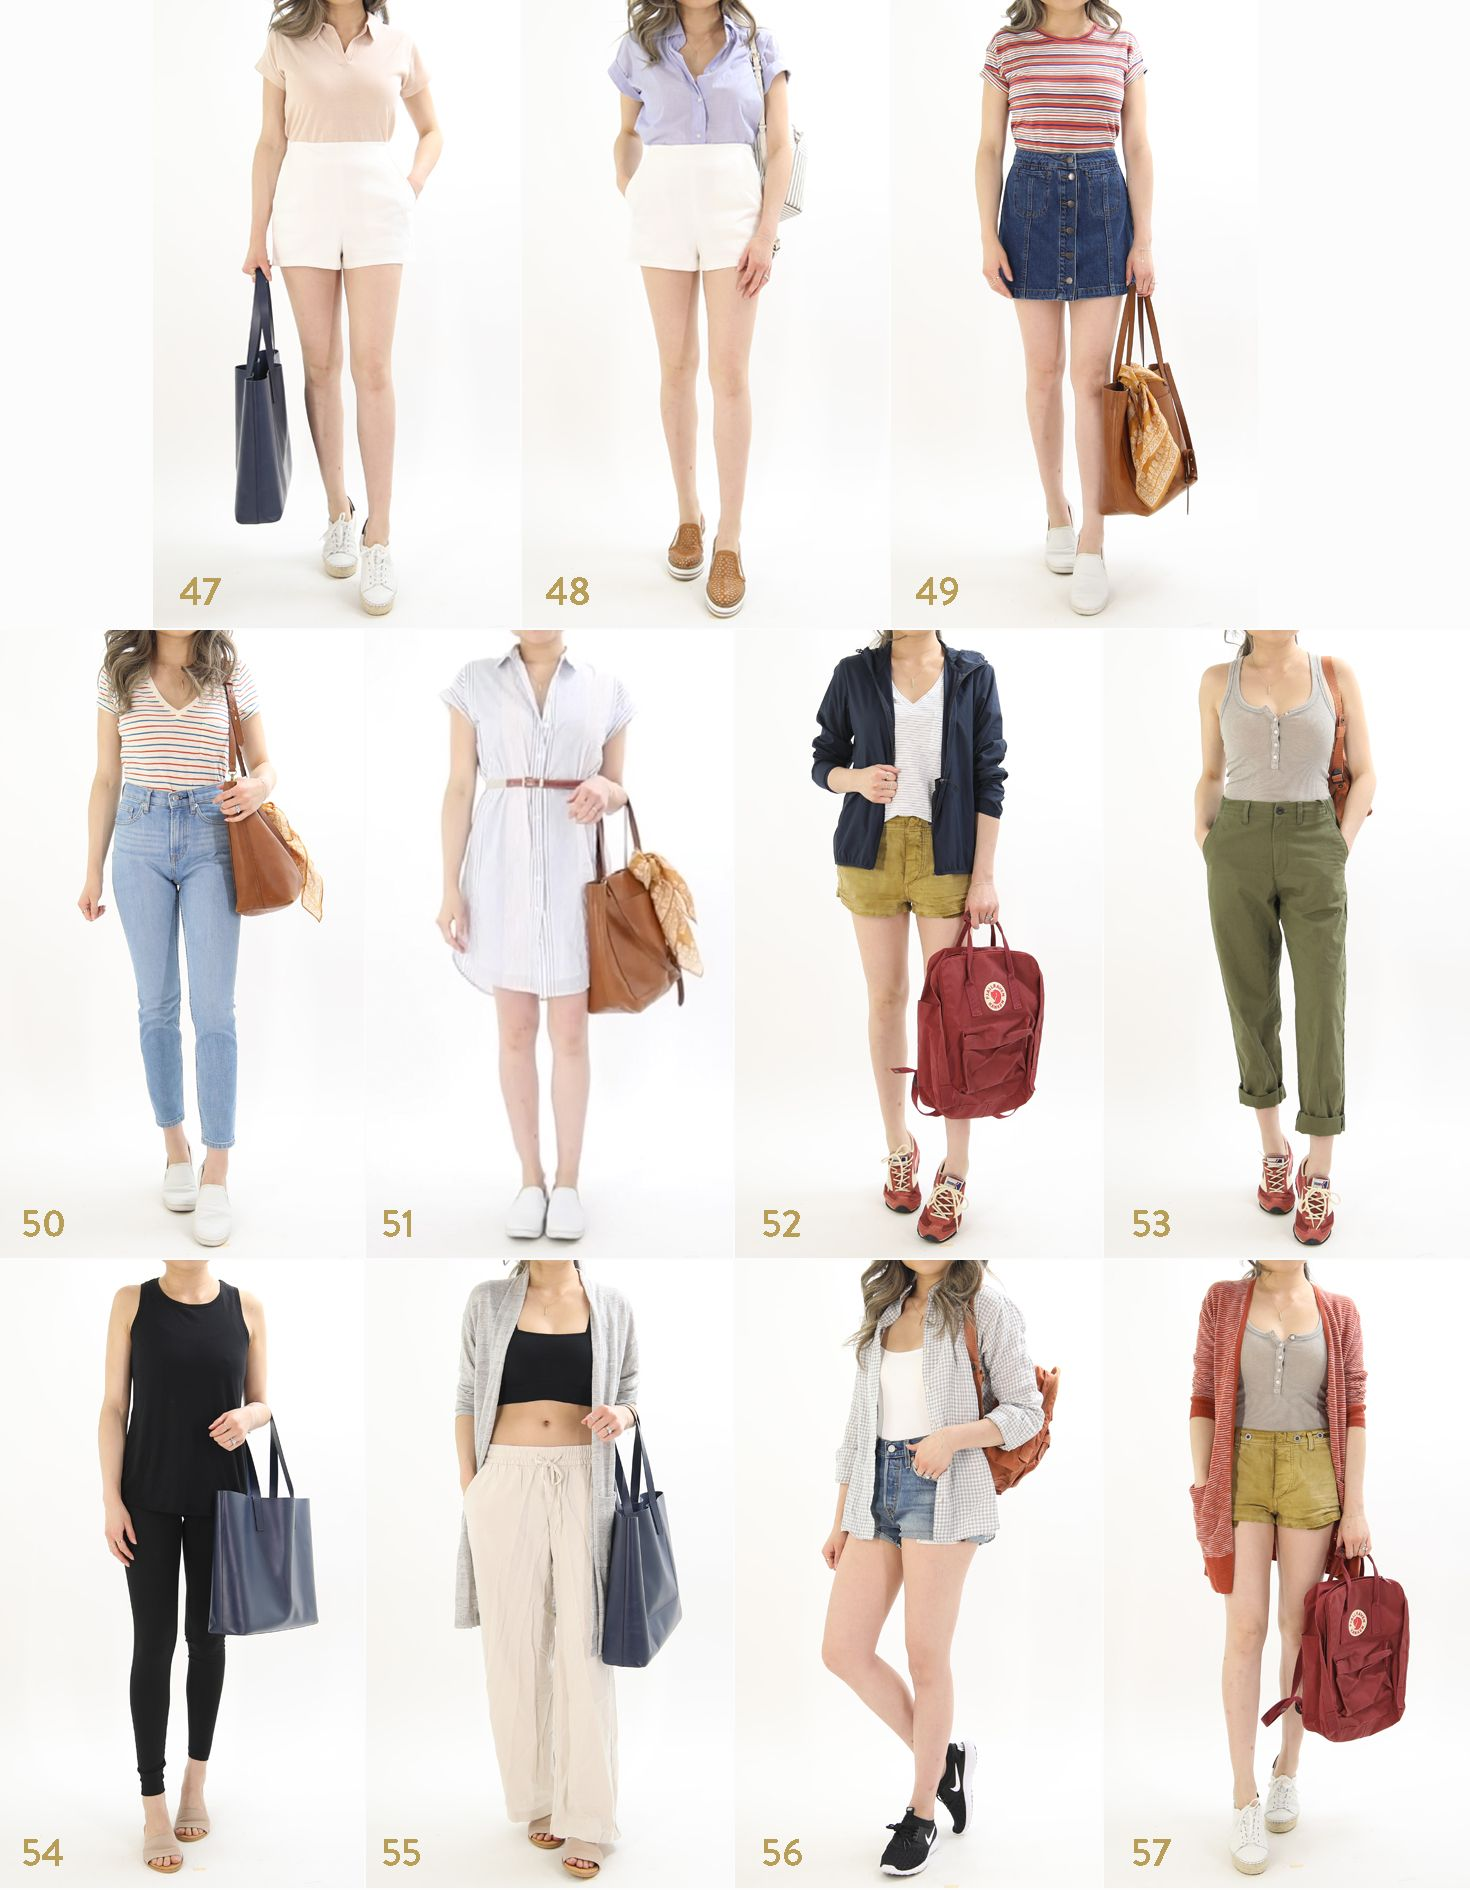 f610cea9d64e The ULTIMATE Summer Vacation Outfit Ideas Guide